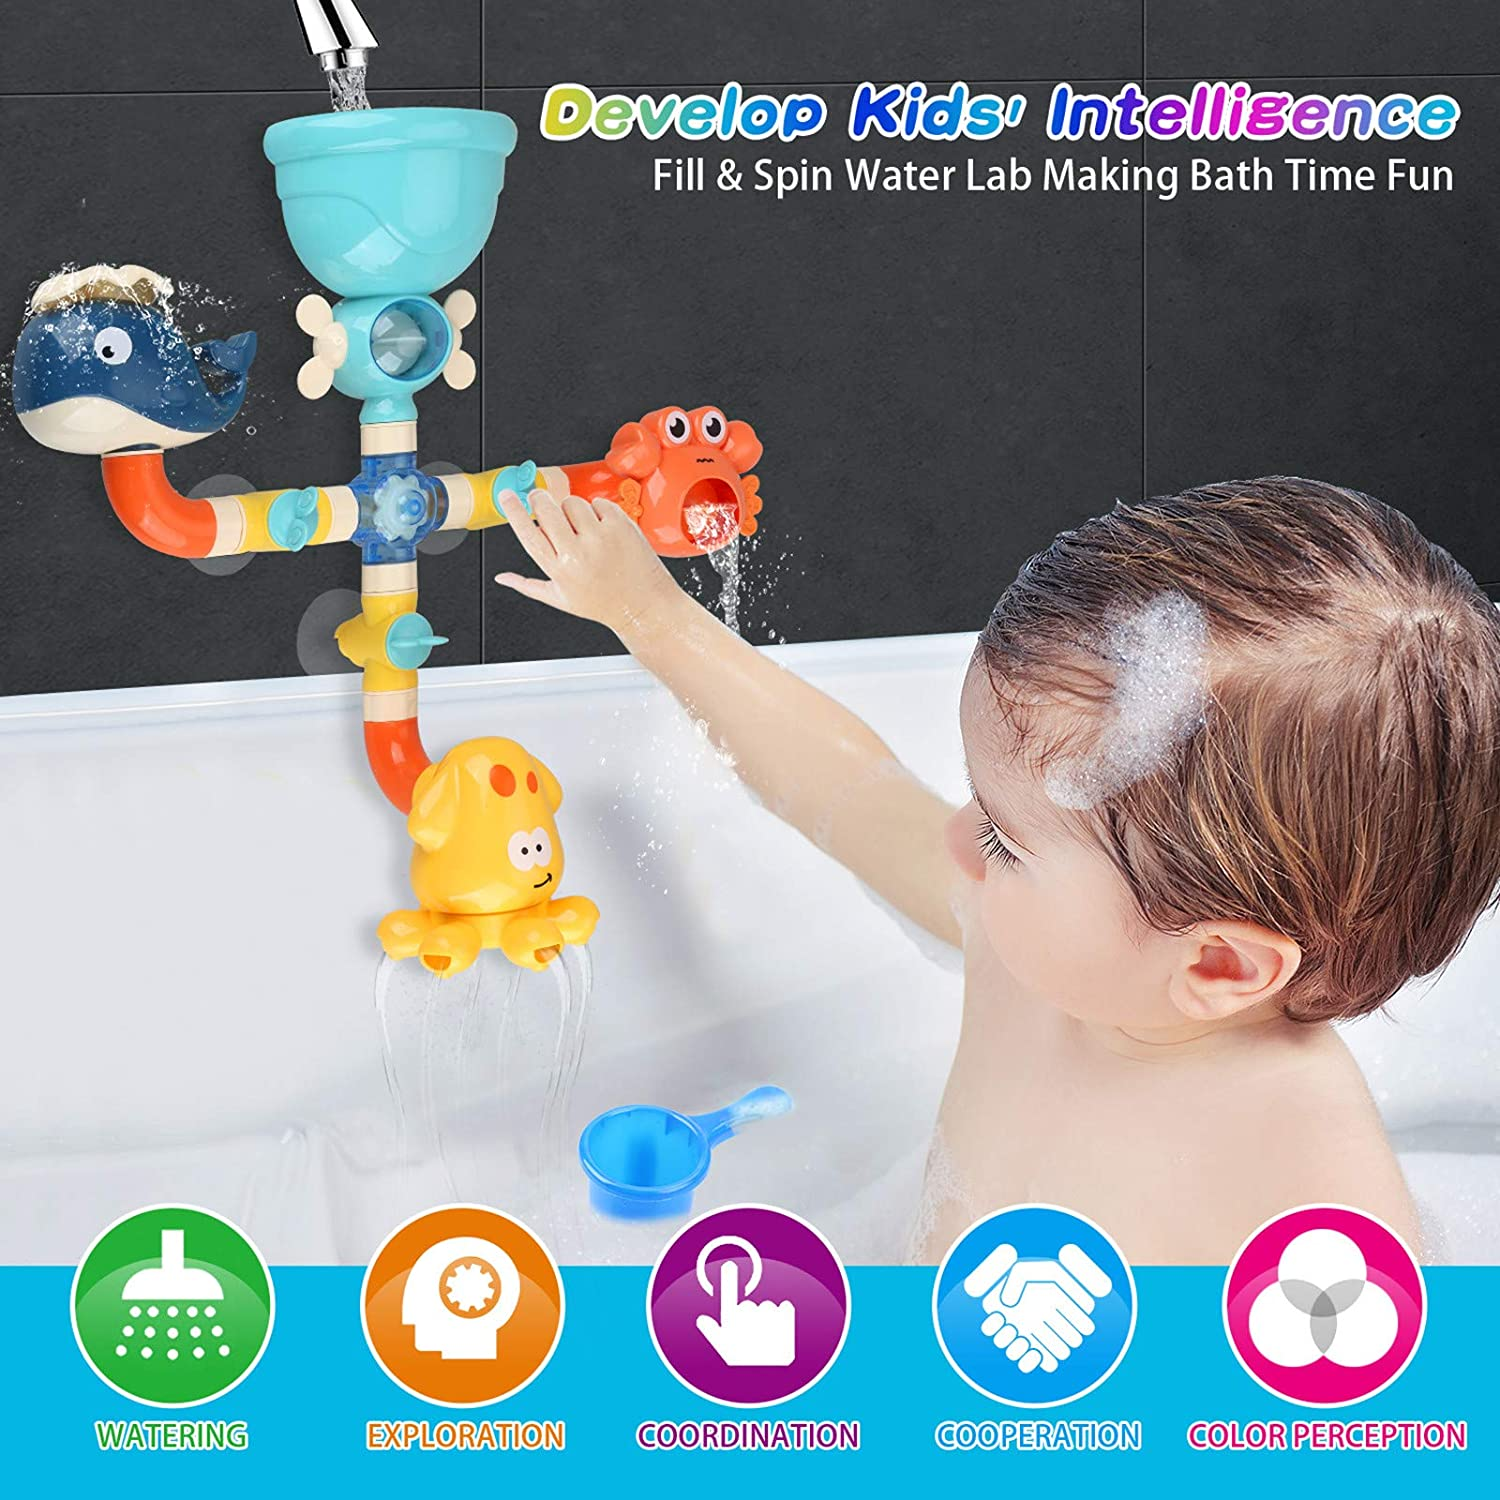 Kids DIY Pipes Tubes for Bath Time with Spinning Gear Rotating Waterfall Fun Water Spout Birthday Gift Ideas Color Box Bath Toys Bathtub Toy for Toddlers Baby 1 2 3 4 5 Years Old Boys and Girls